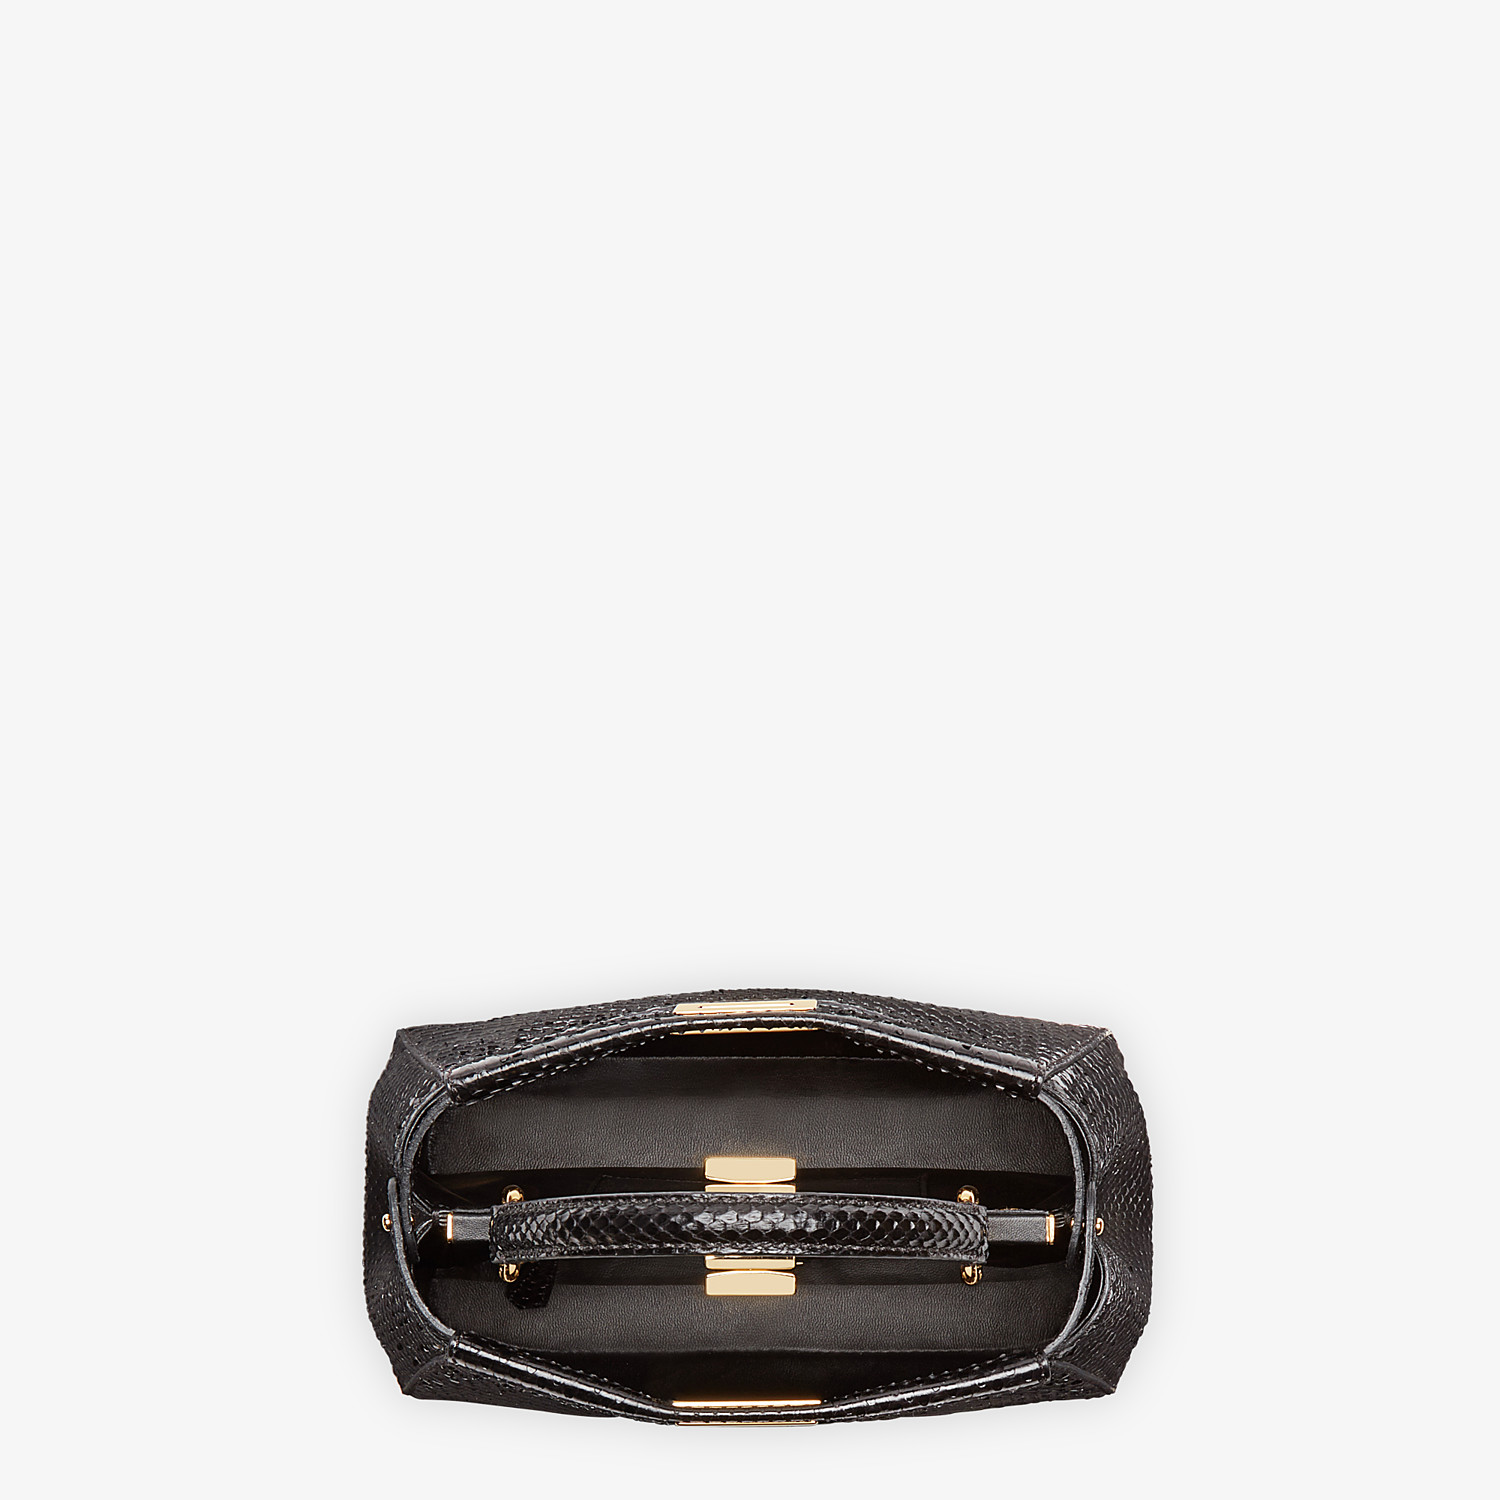 FENDI PEEKABOO ICONIC MINI - Black python handbag. - view 4 detail